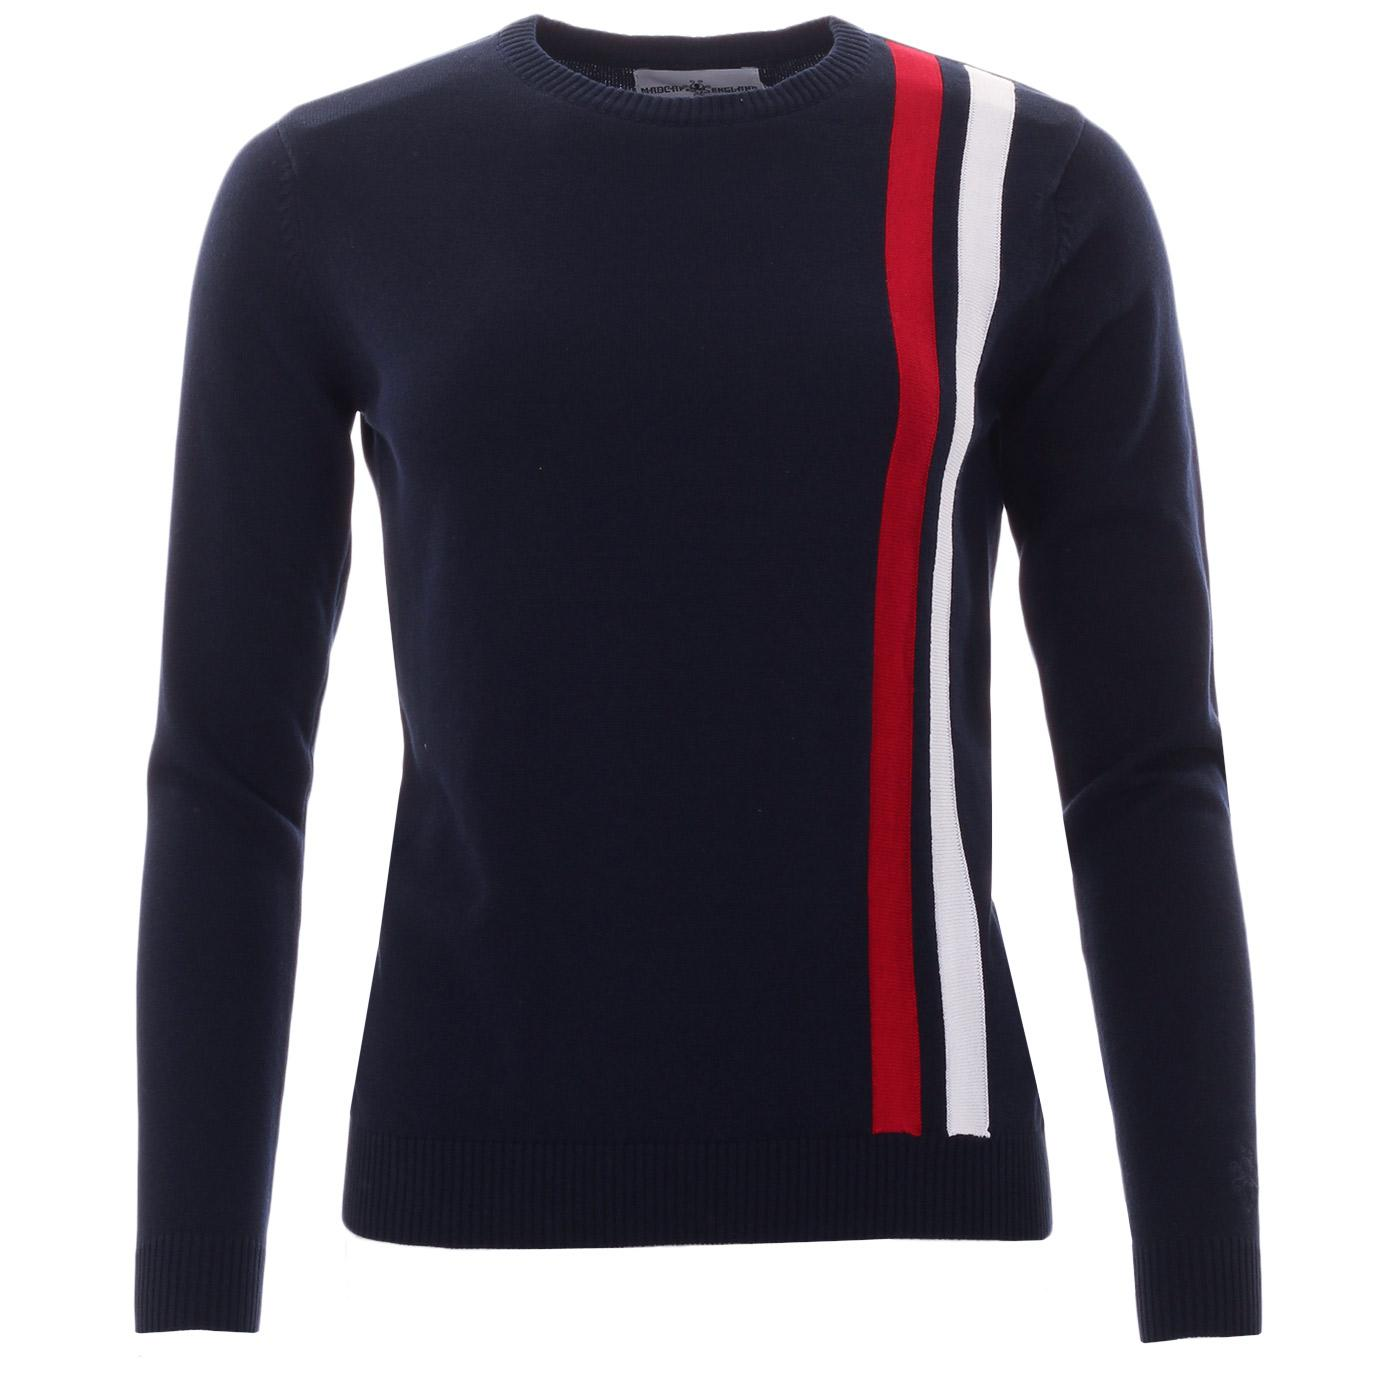 Action MADCAP ENGLAND Womens Mod Racing Jumper (N)